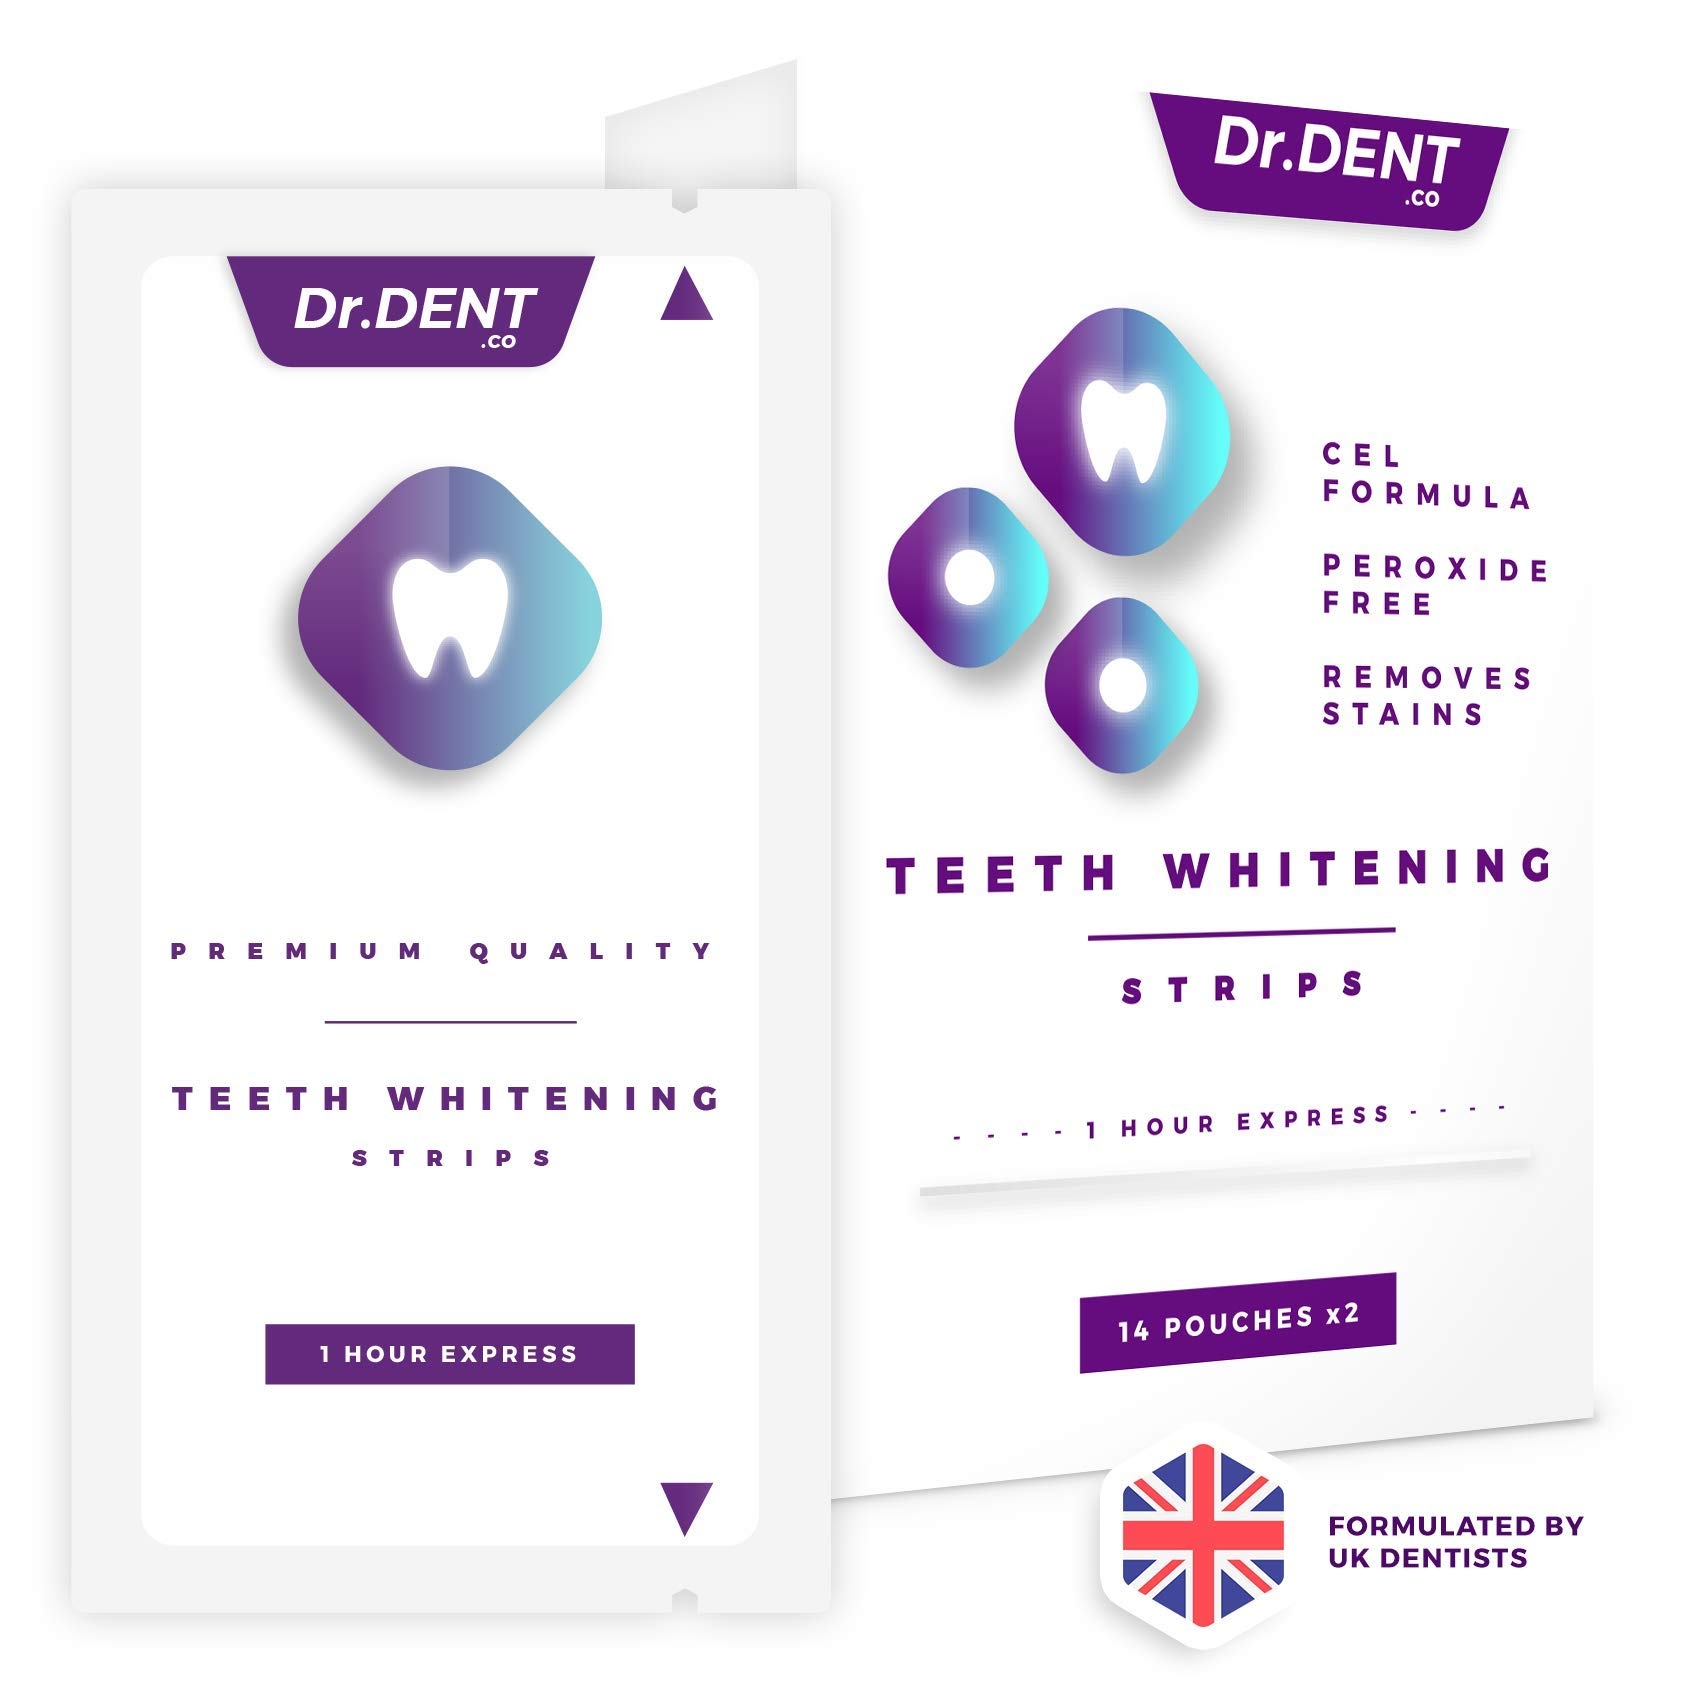 Teeth Whitening Strips by DrDent | 1 Hour Express | No Sensitivity | Peroxide-Free | 3D Teeth Whitening Kit (28 Whitening Strips) | 100% Money Back Guarantee product image